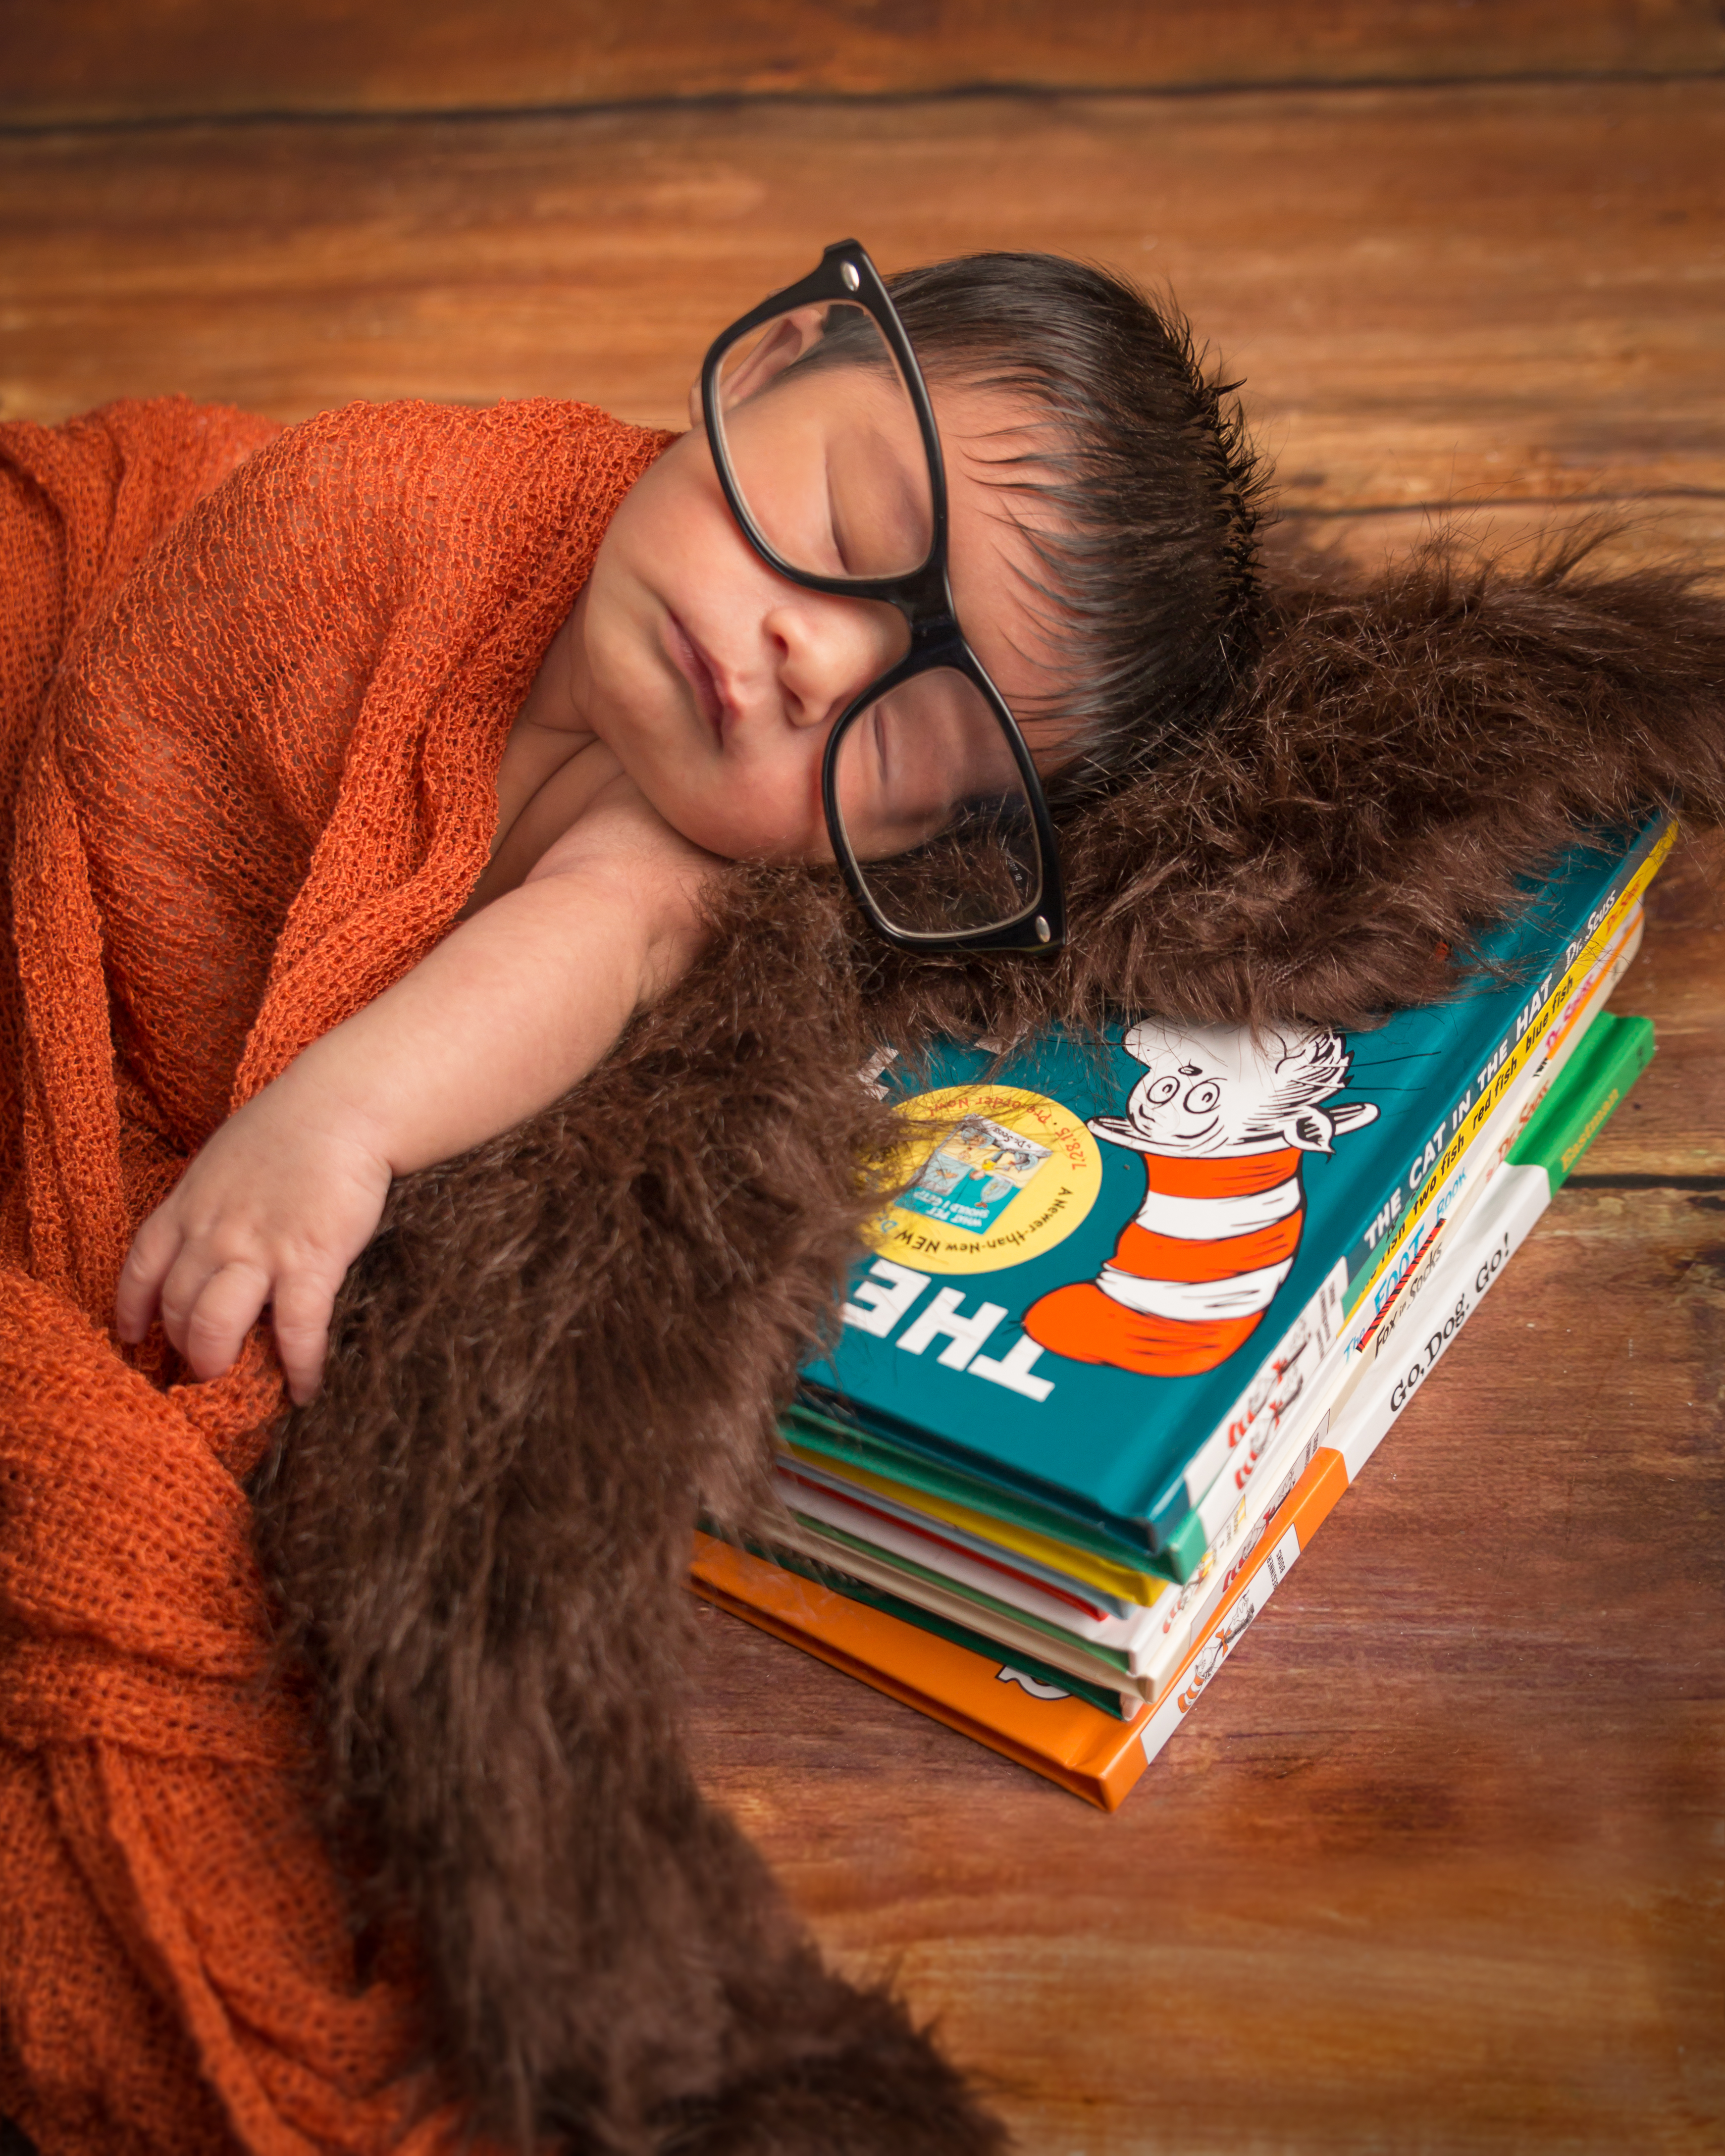 Baby sleeping on a bear skin rug with books and a glasses